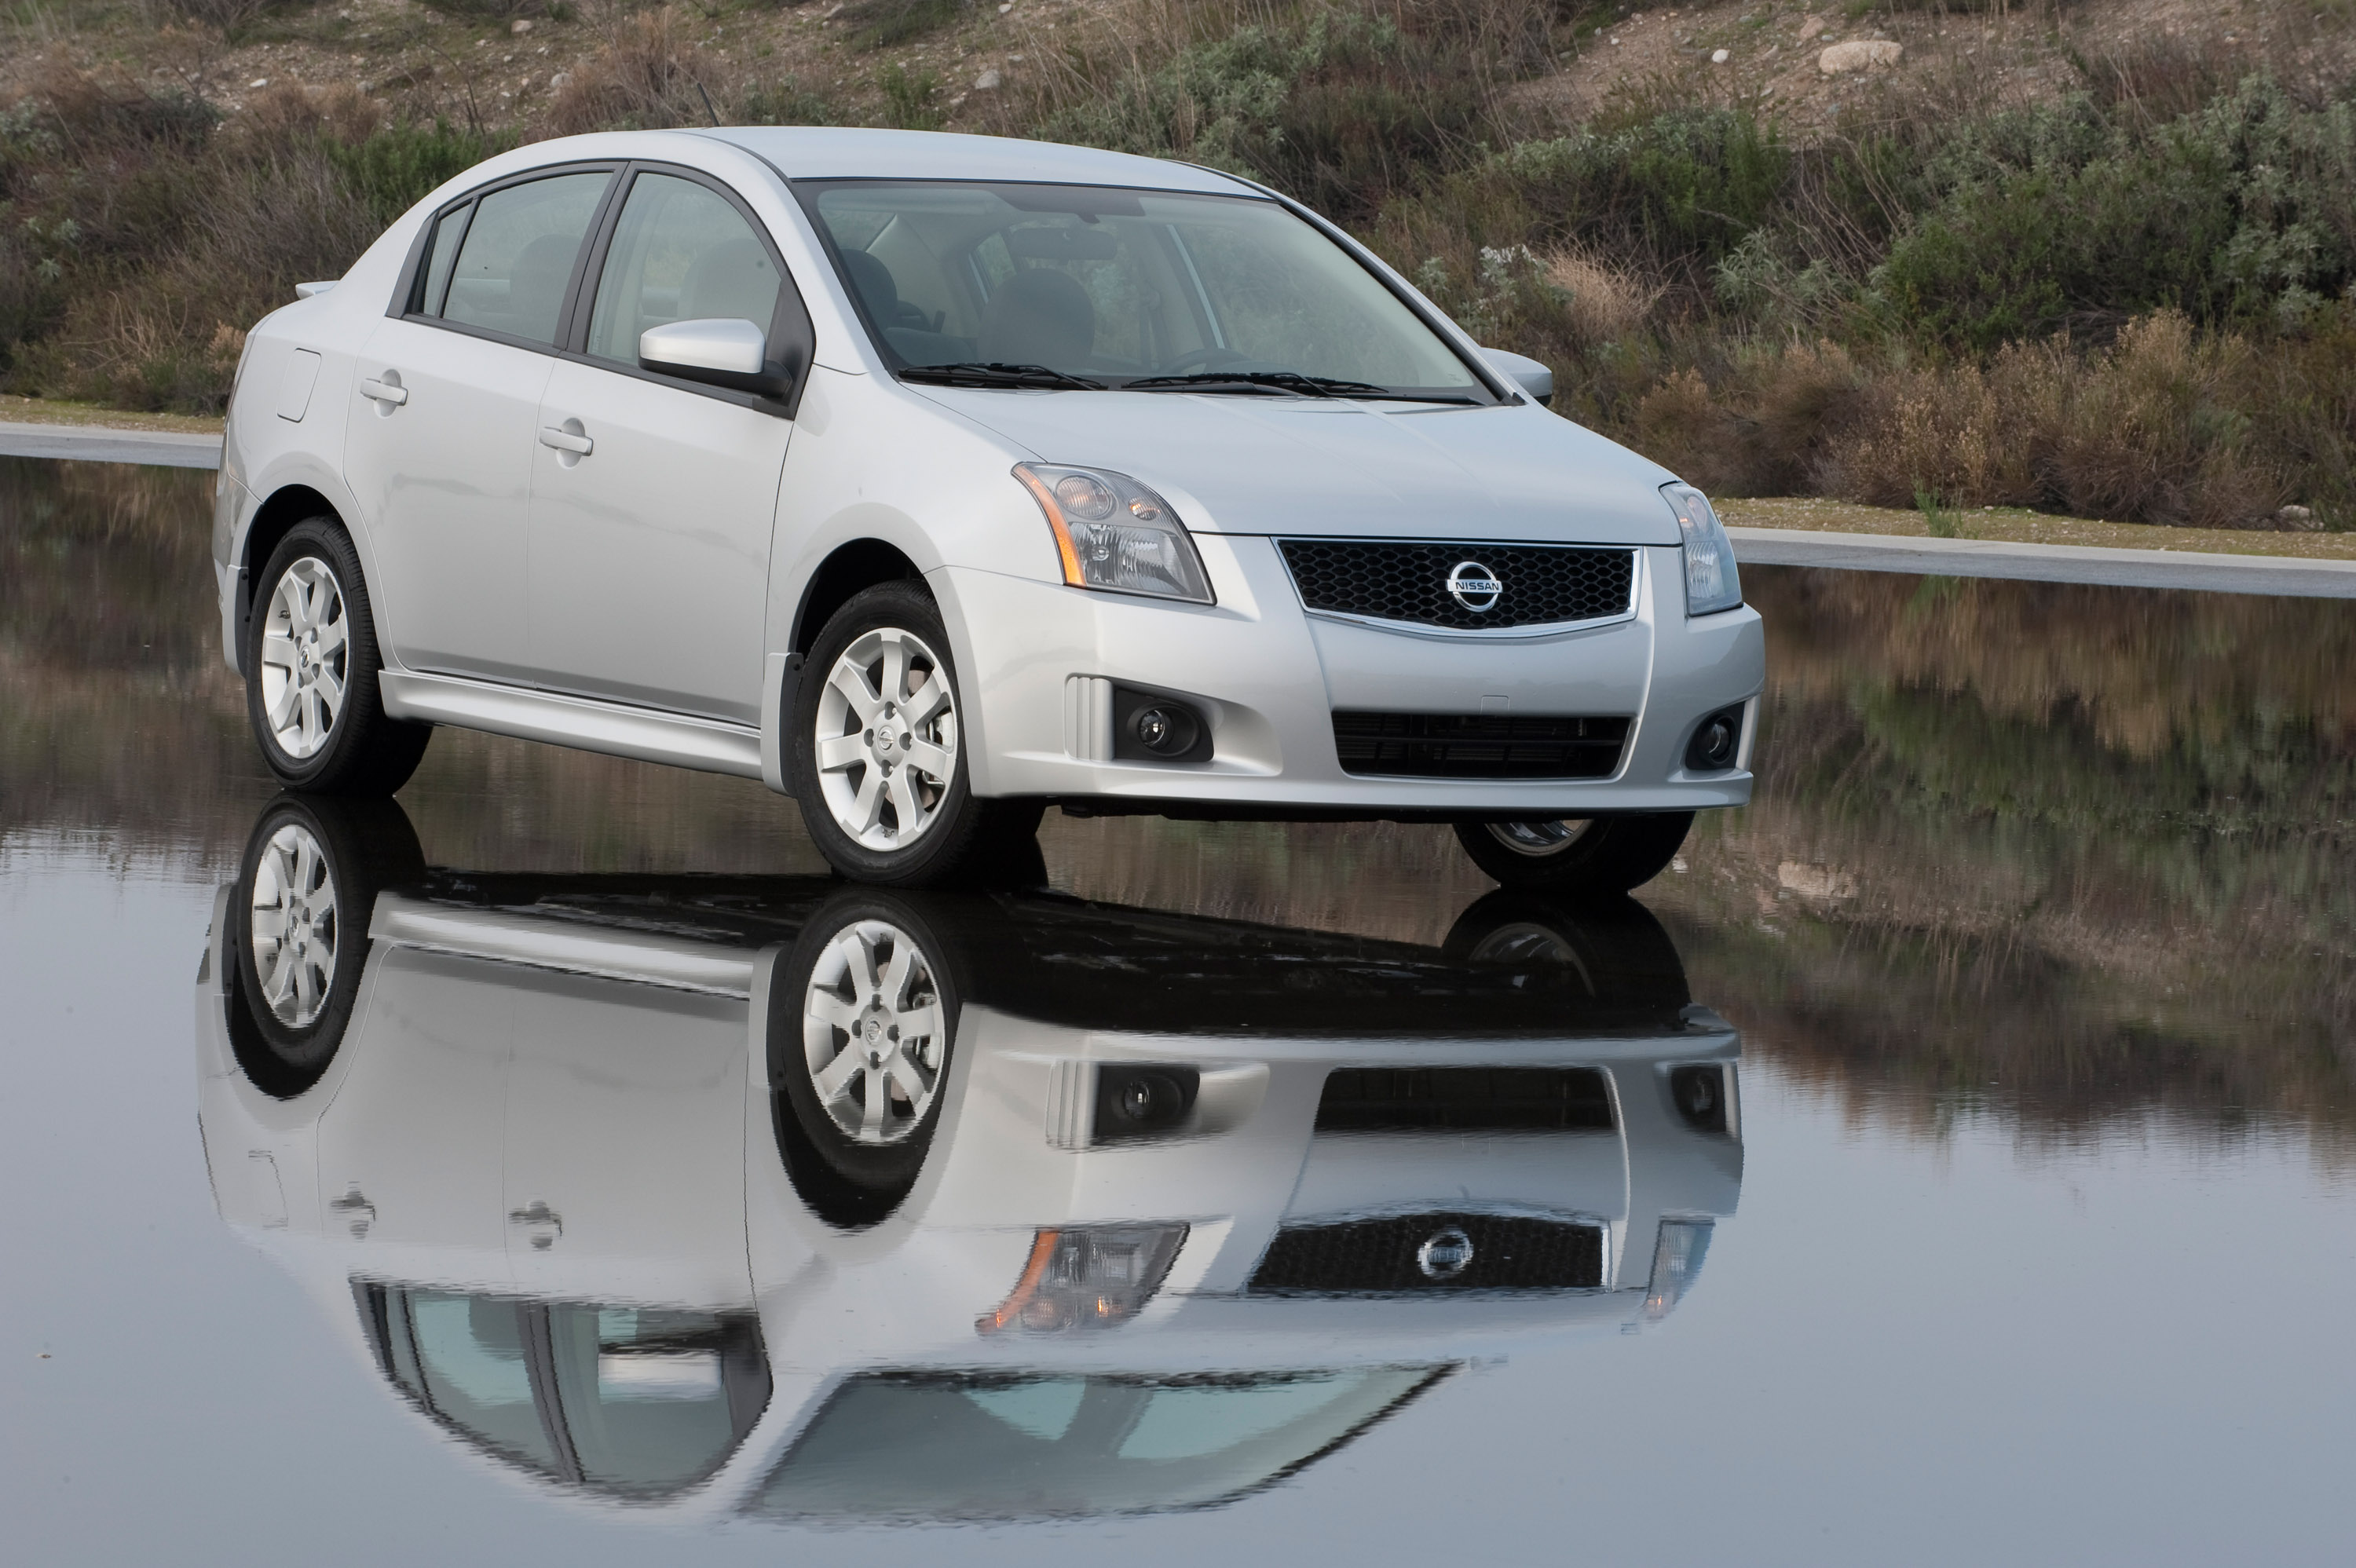 sale s place in for mitsubishi cbadriver easley find sc of eclipse latest ideas awesome car to